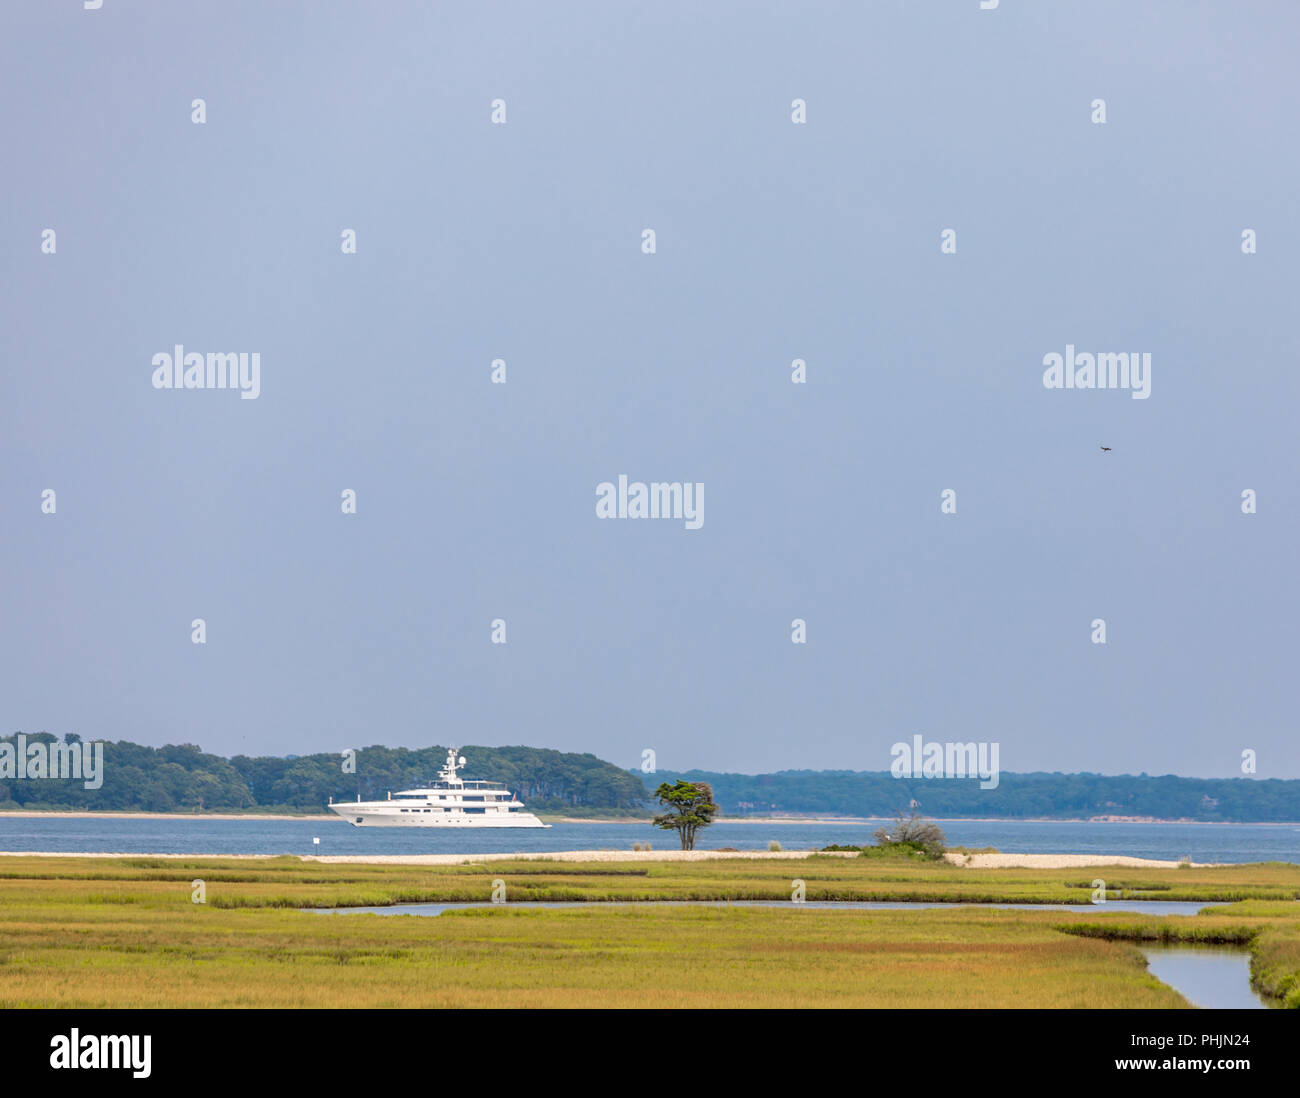 a large yacht off the shore of a nature preserve in North Haven NY Stock Photo